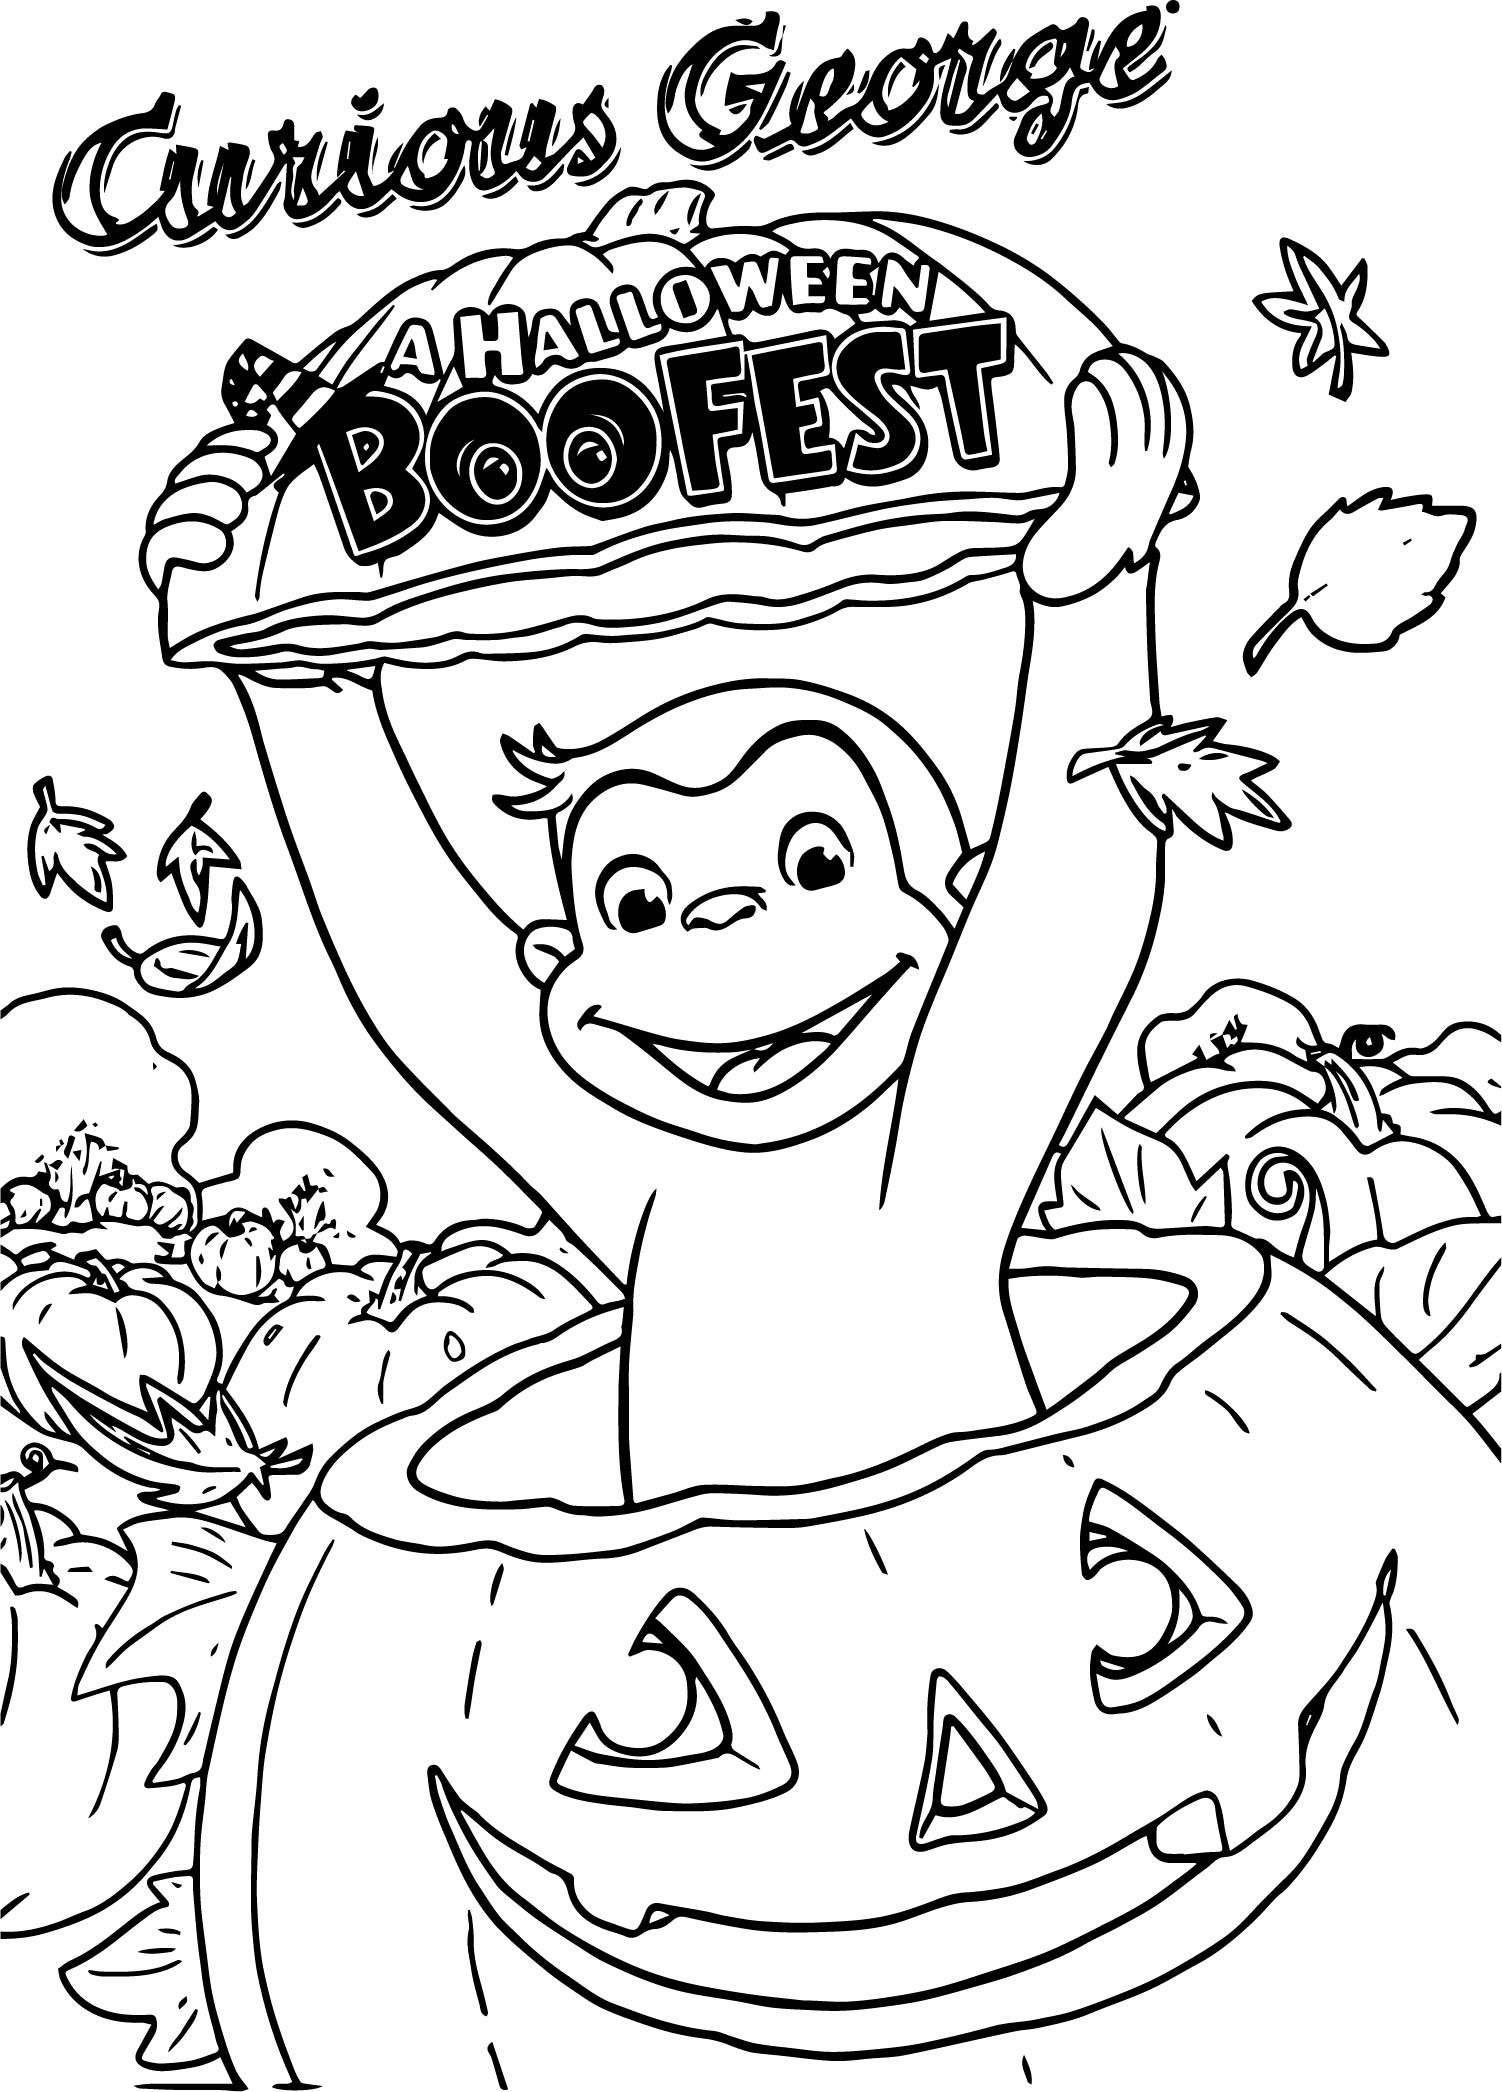 Awesome Curious George A Halloween Boofest Coloring Page